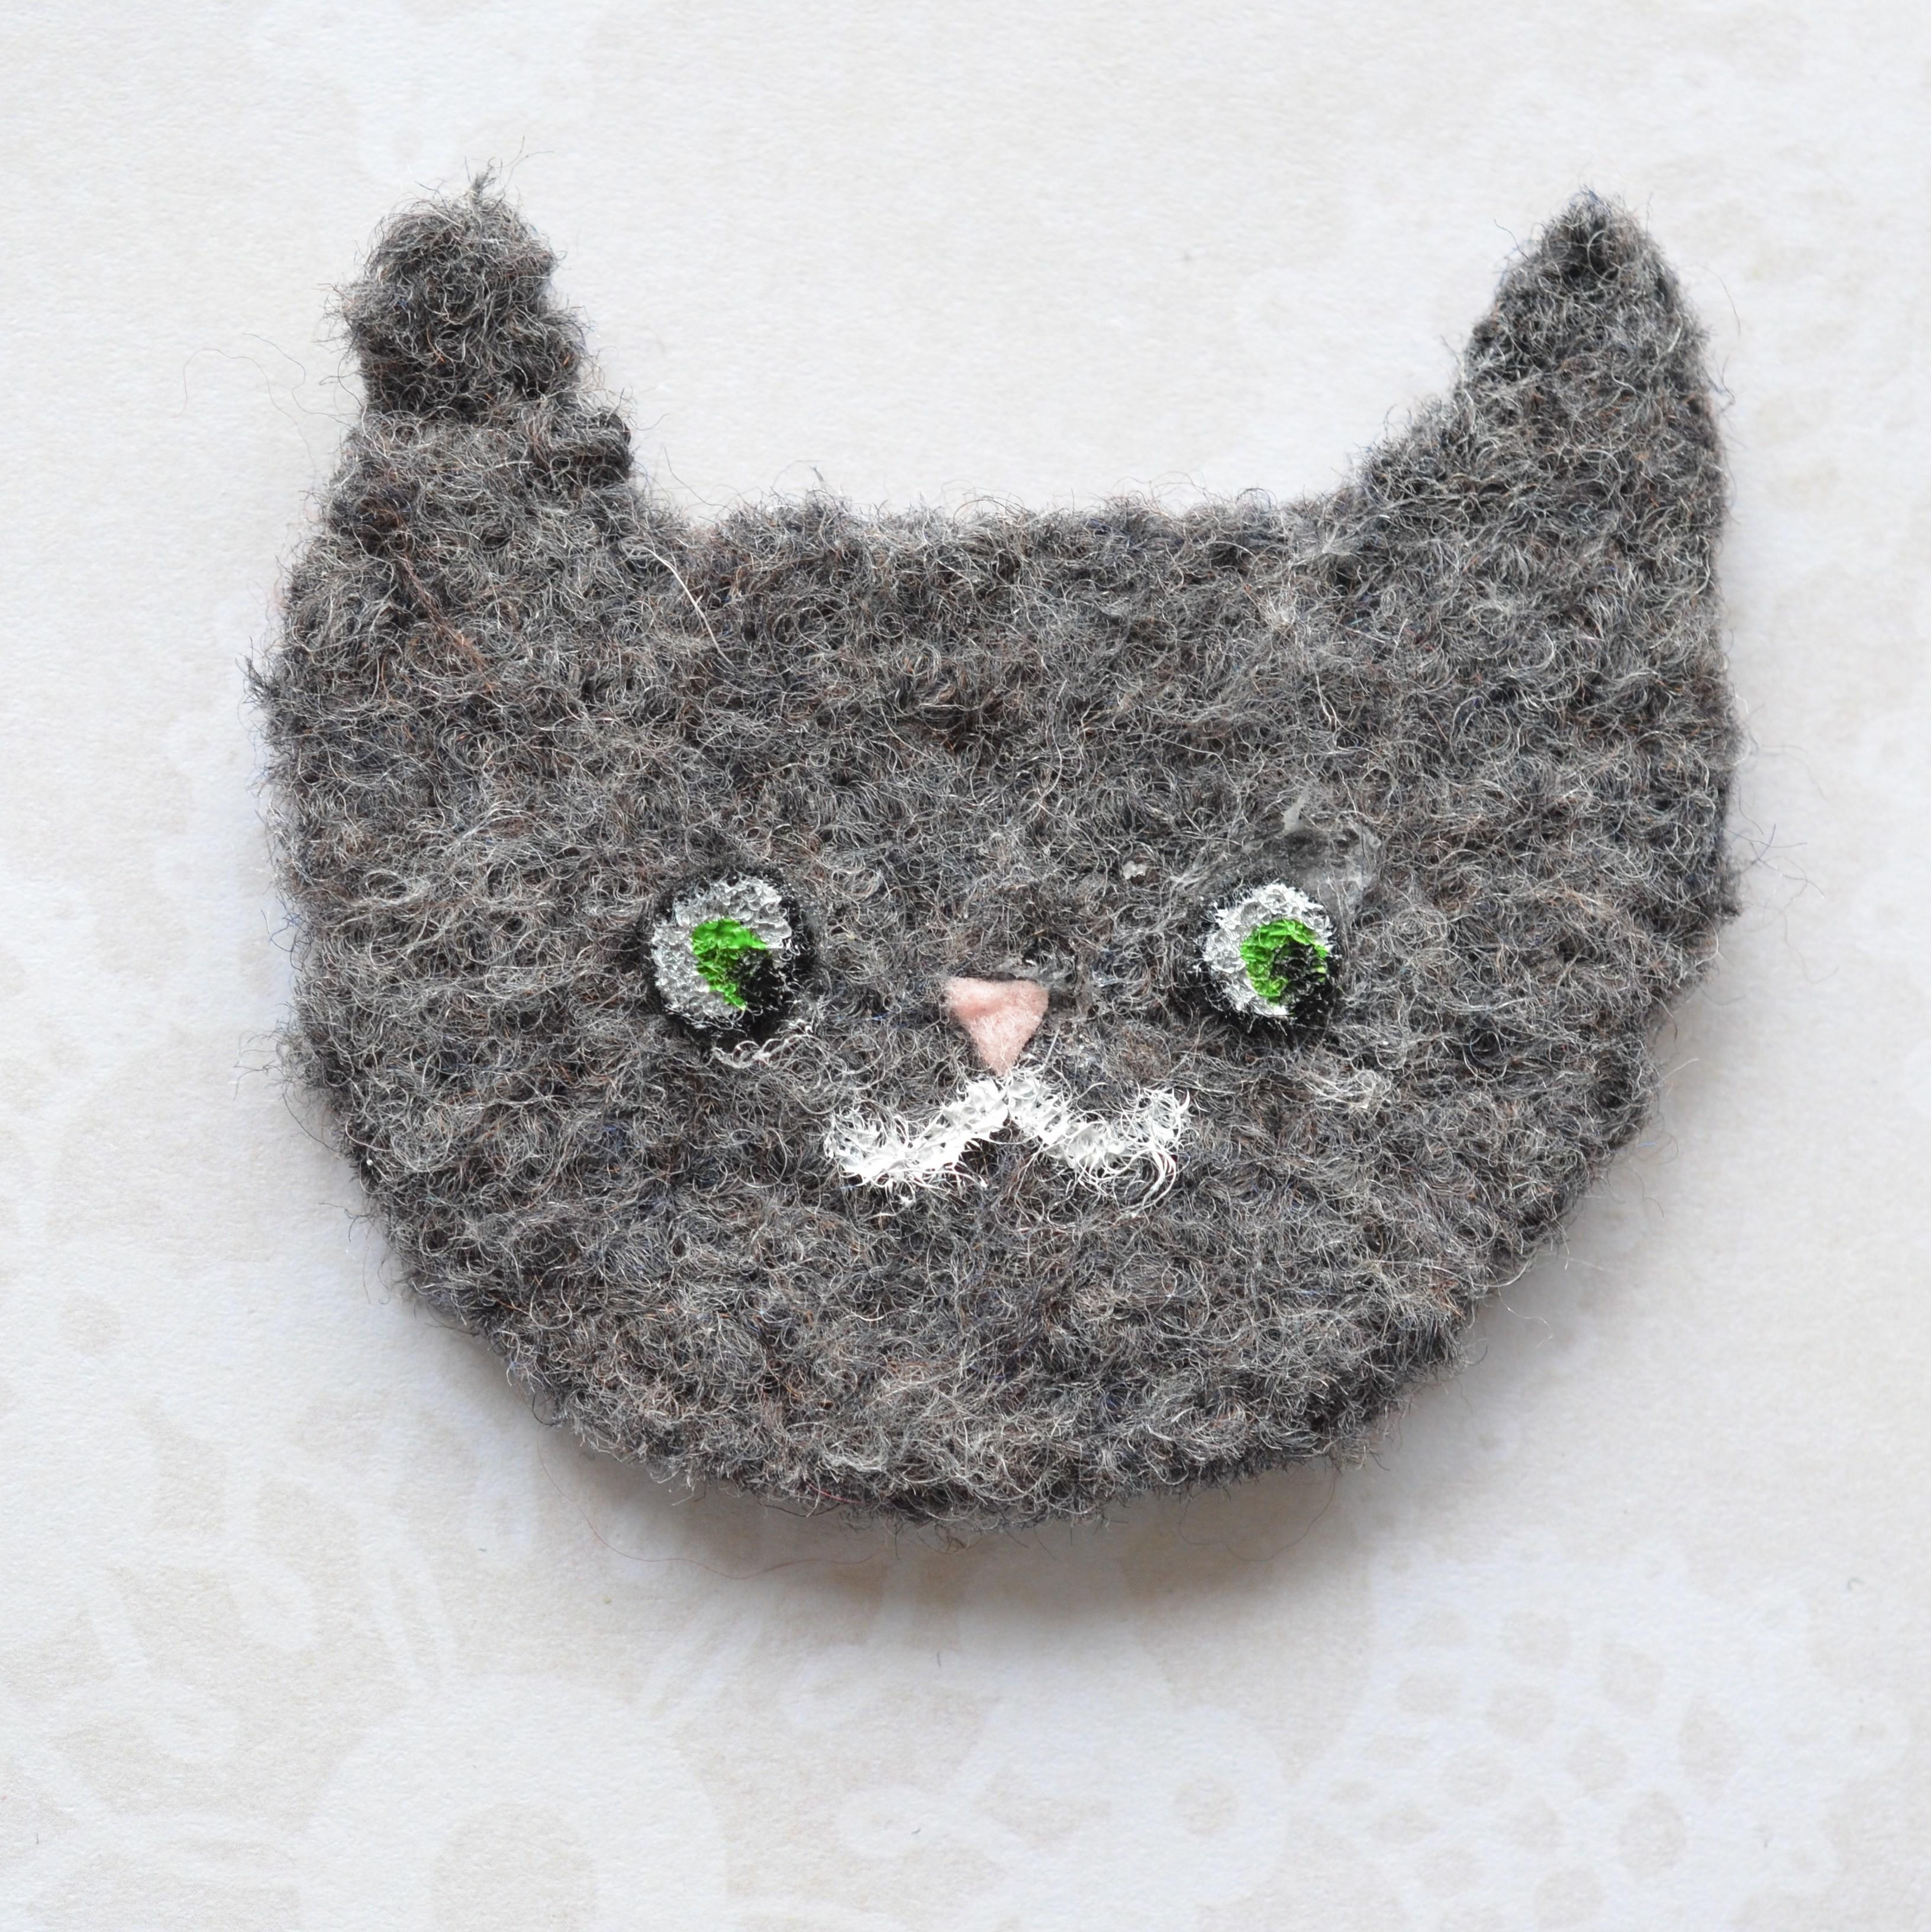 Pre Shave Oil Pops Milk Crochet Craft Diy Felt Cat